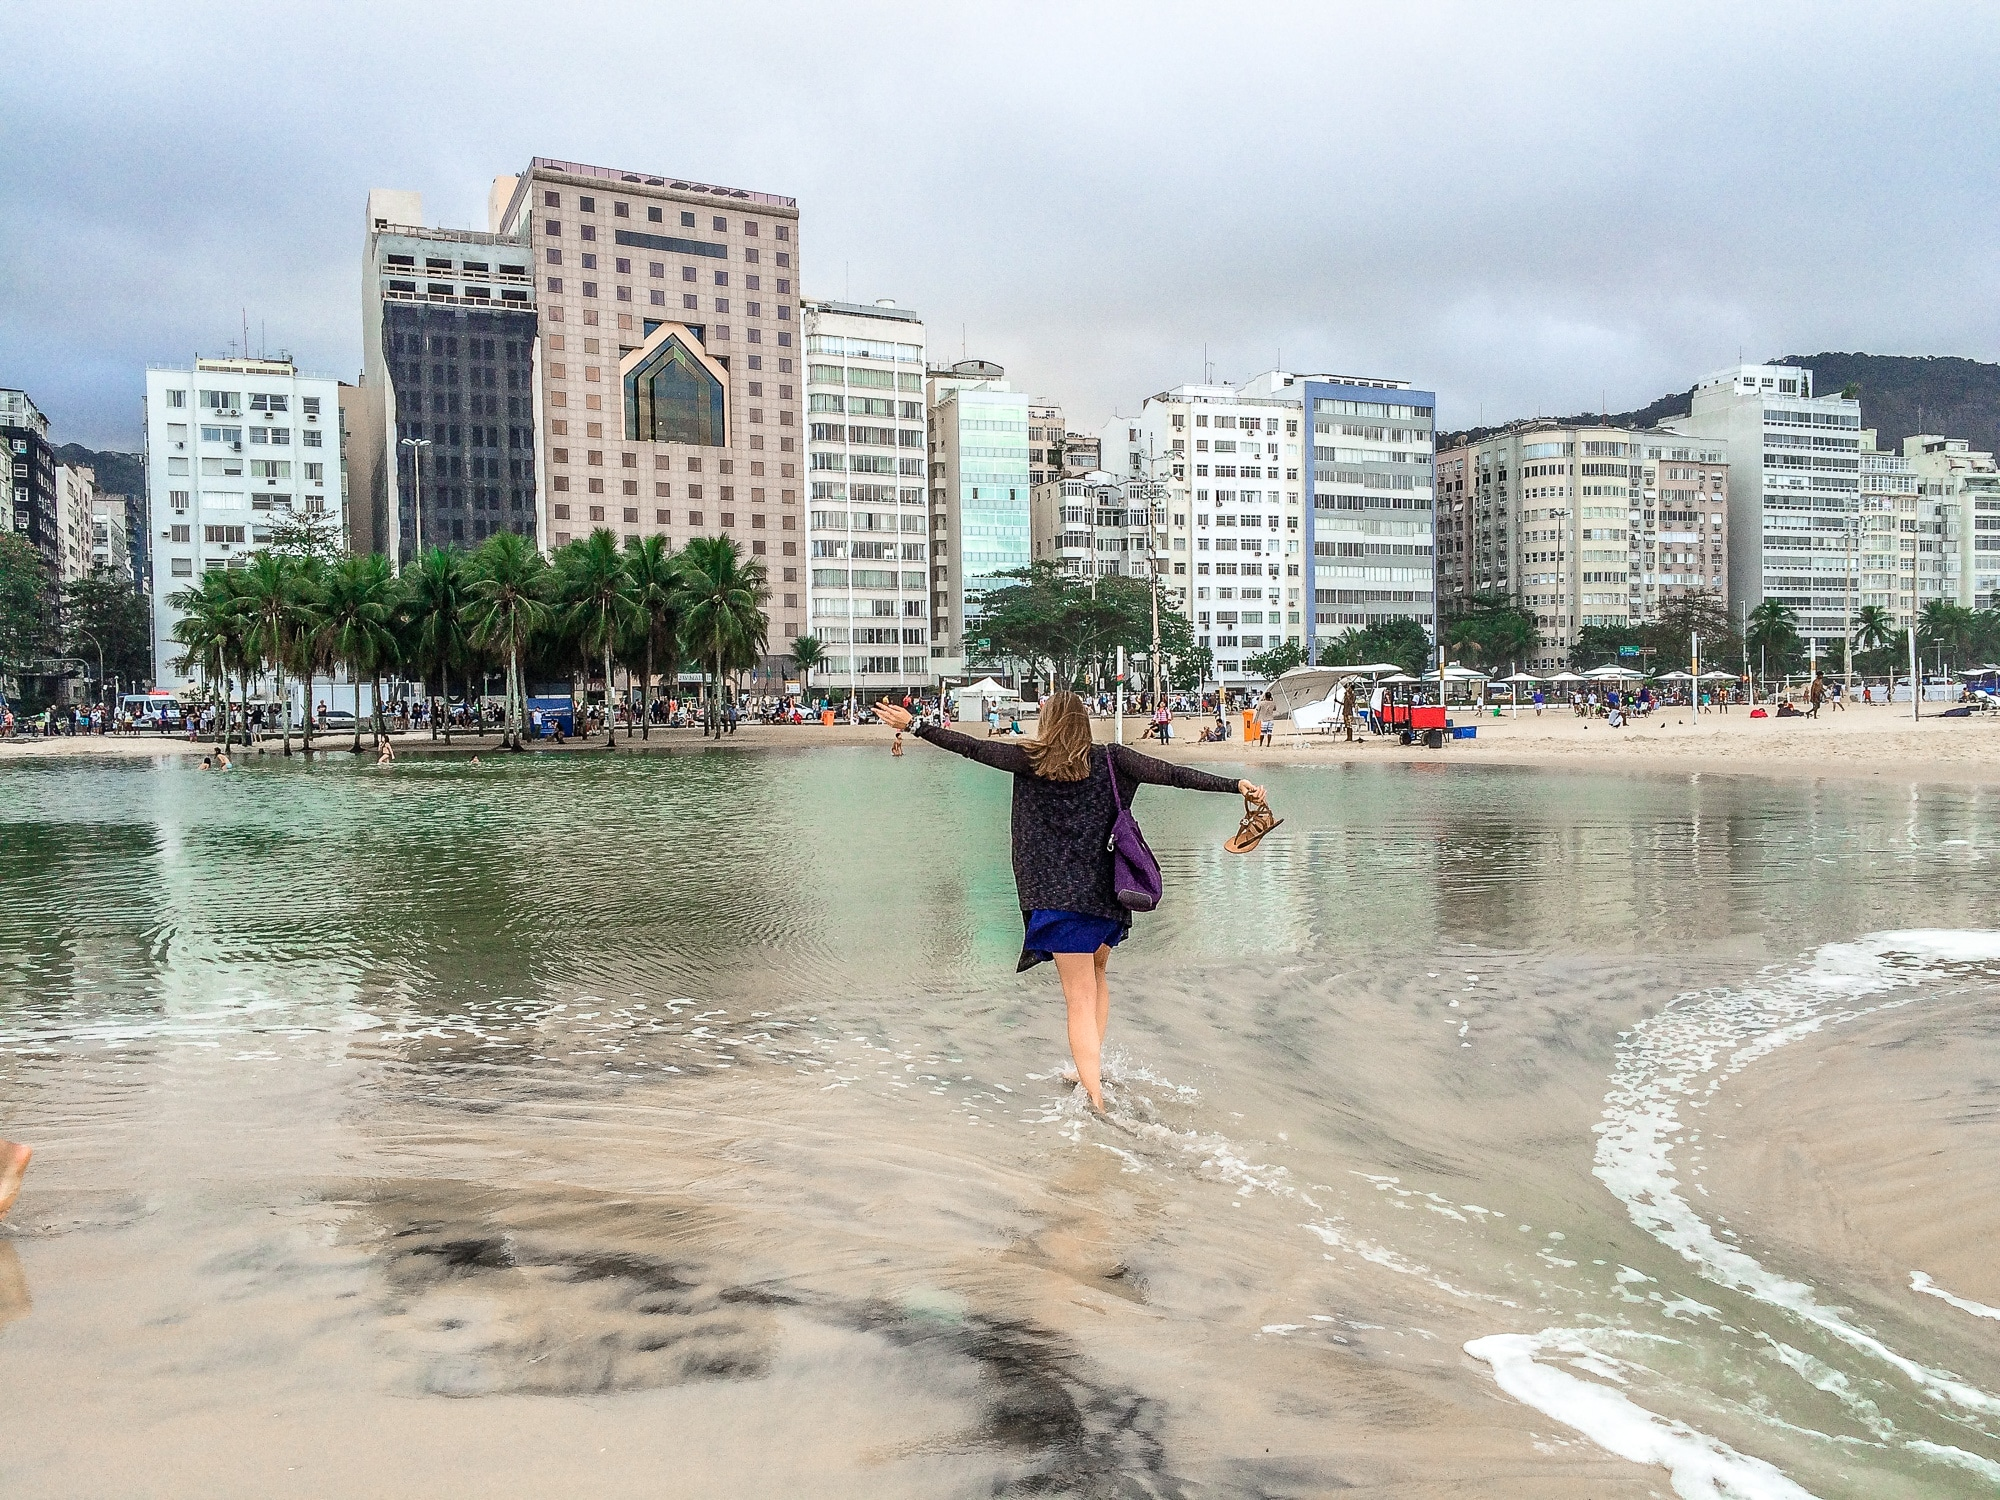 Rio de Janeiro Sightseeing und Top 10 Things to do